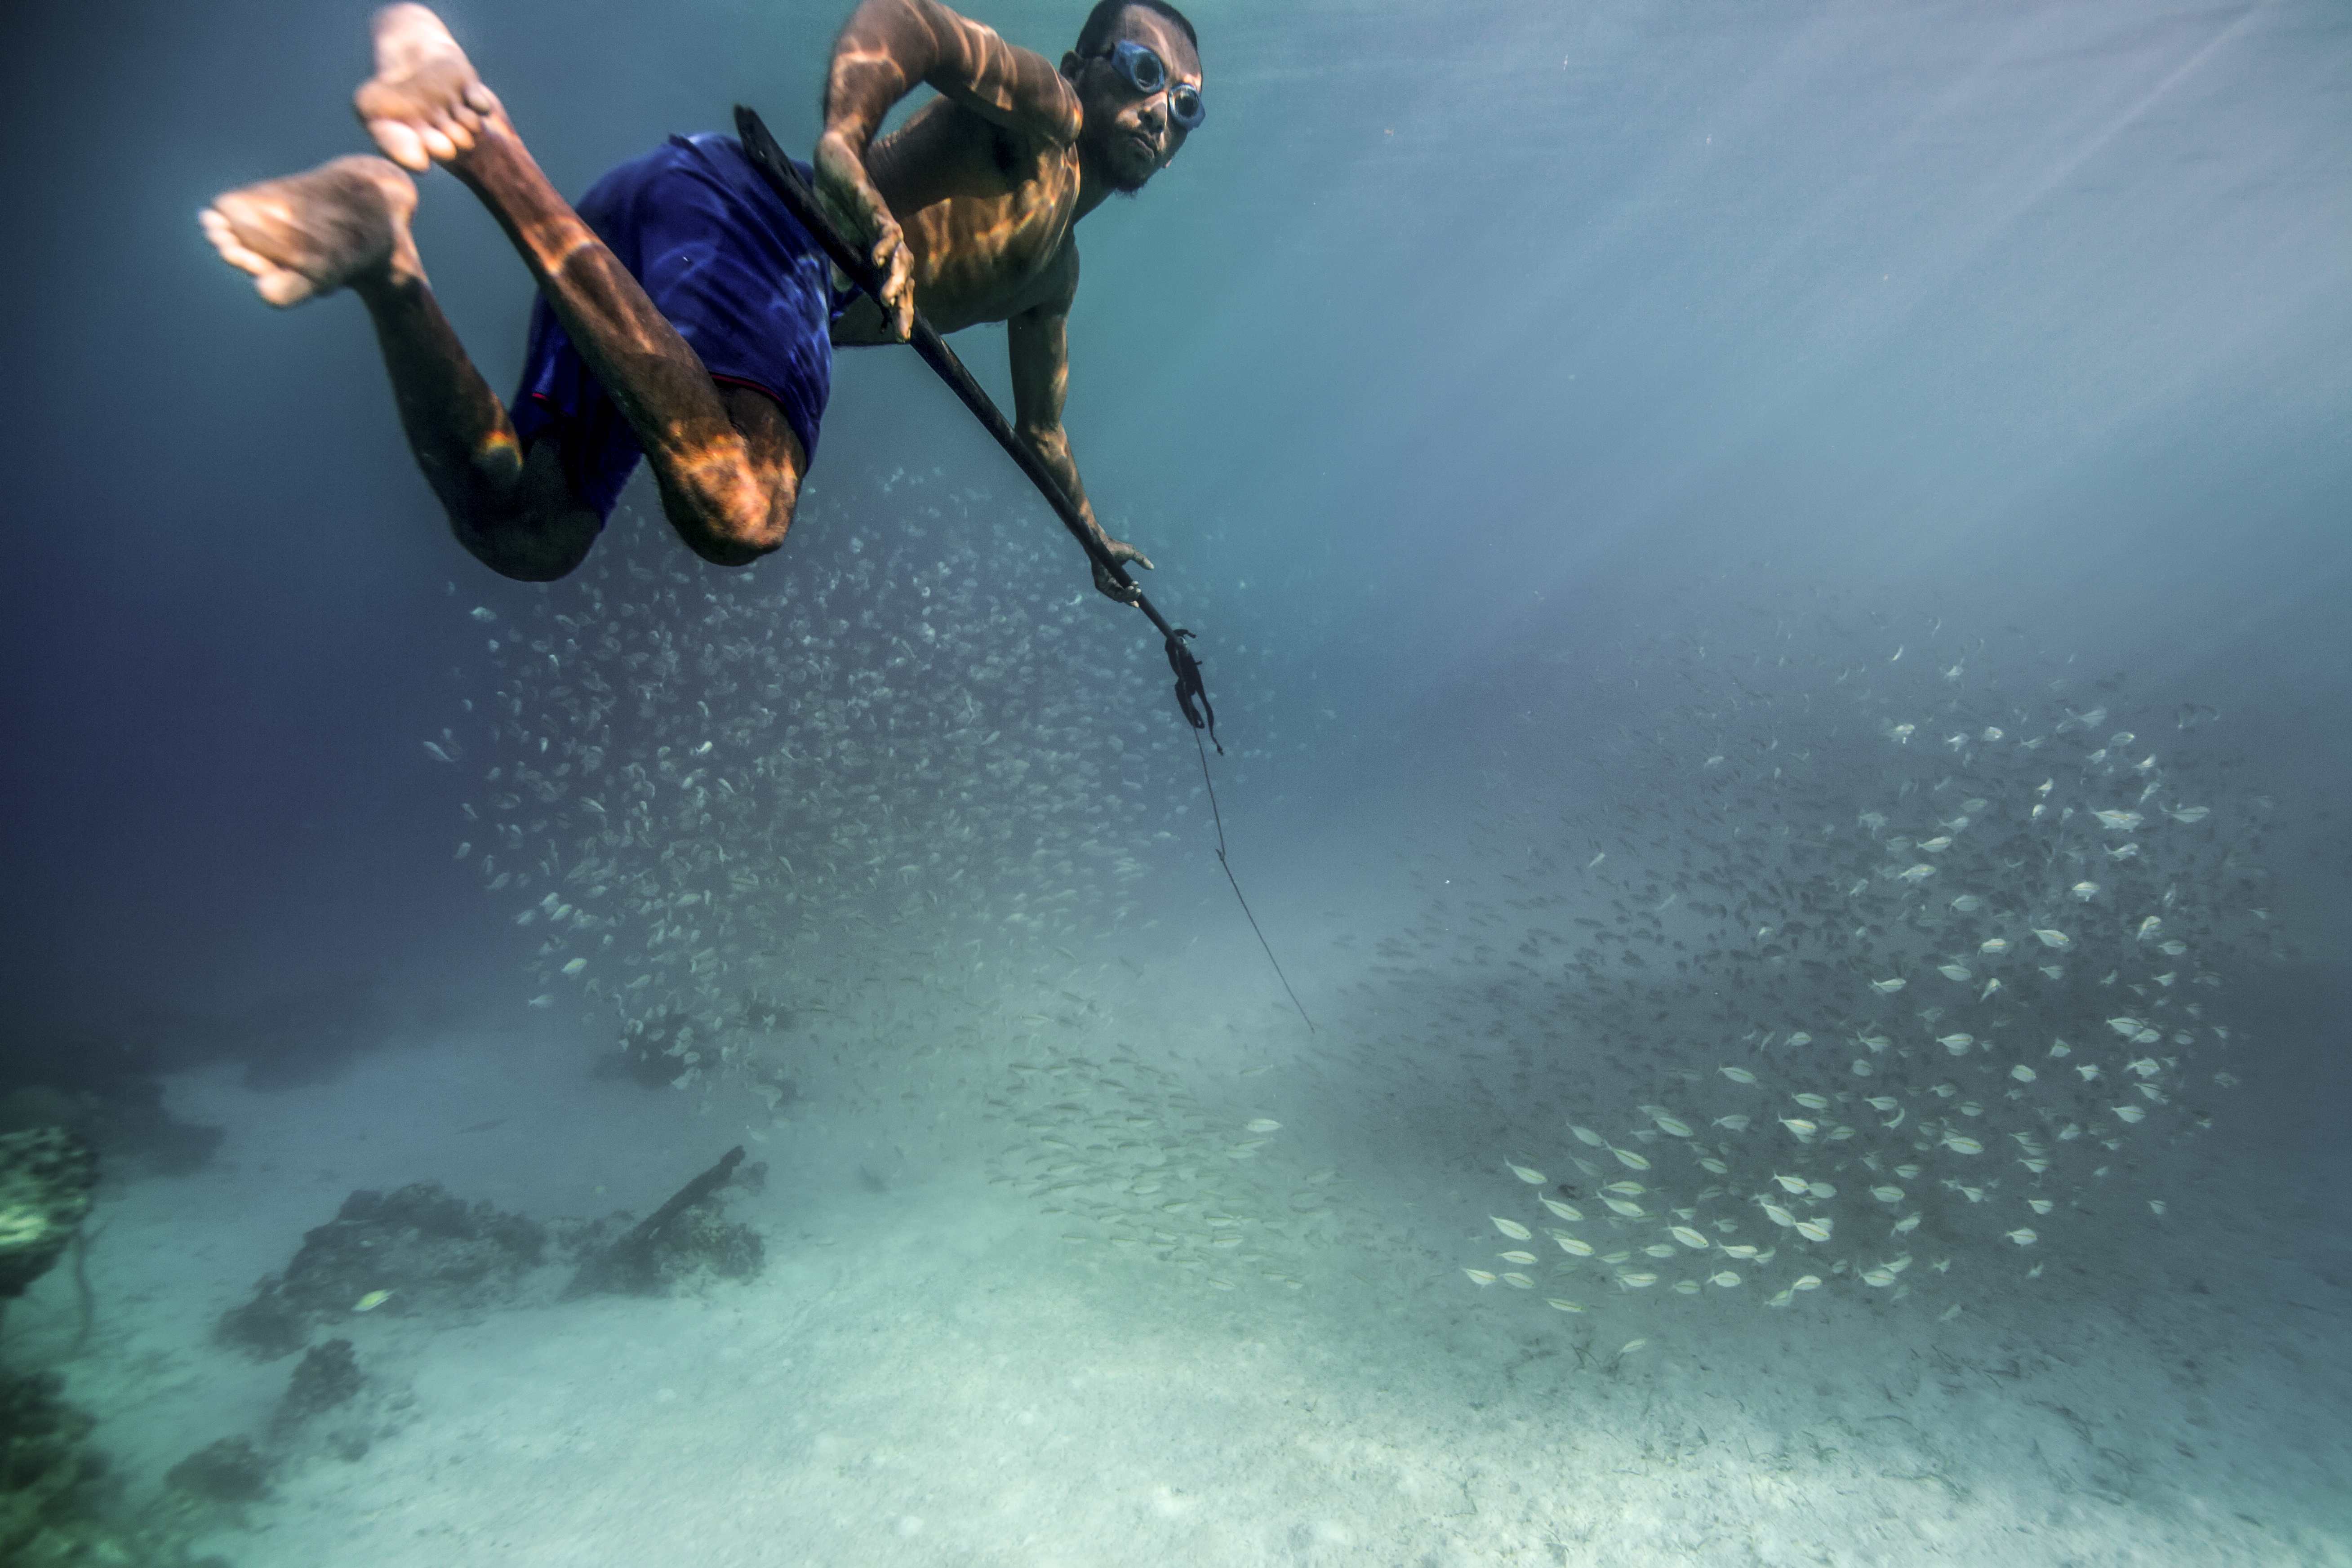 Traditionally hunter-gatherers, the Bajau have provided for themselves primarily by spearfishing. But as seas are fished out, it has become harder for them to support themselves.